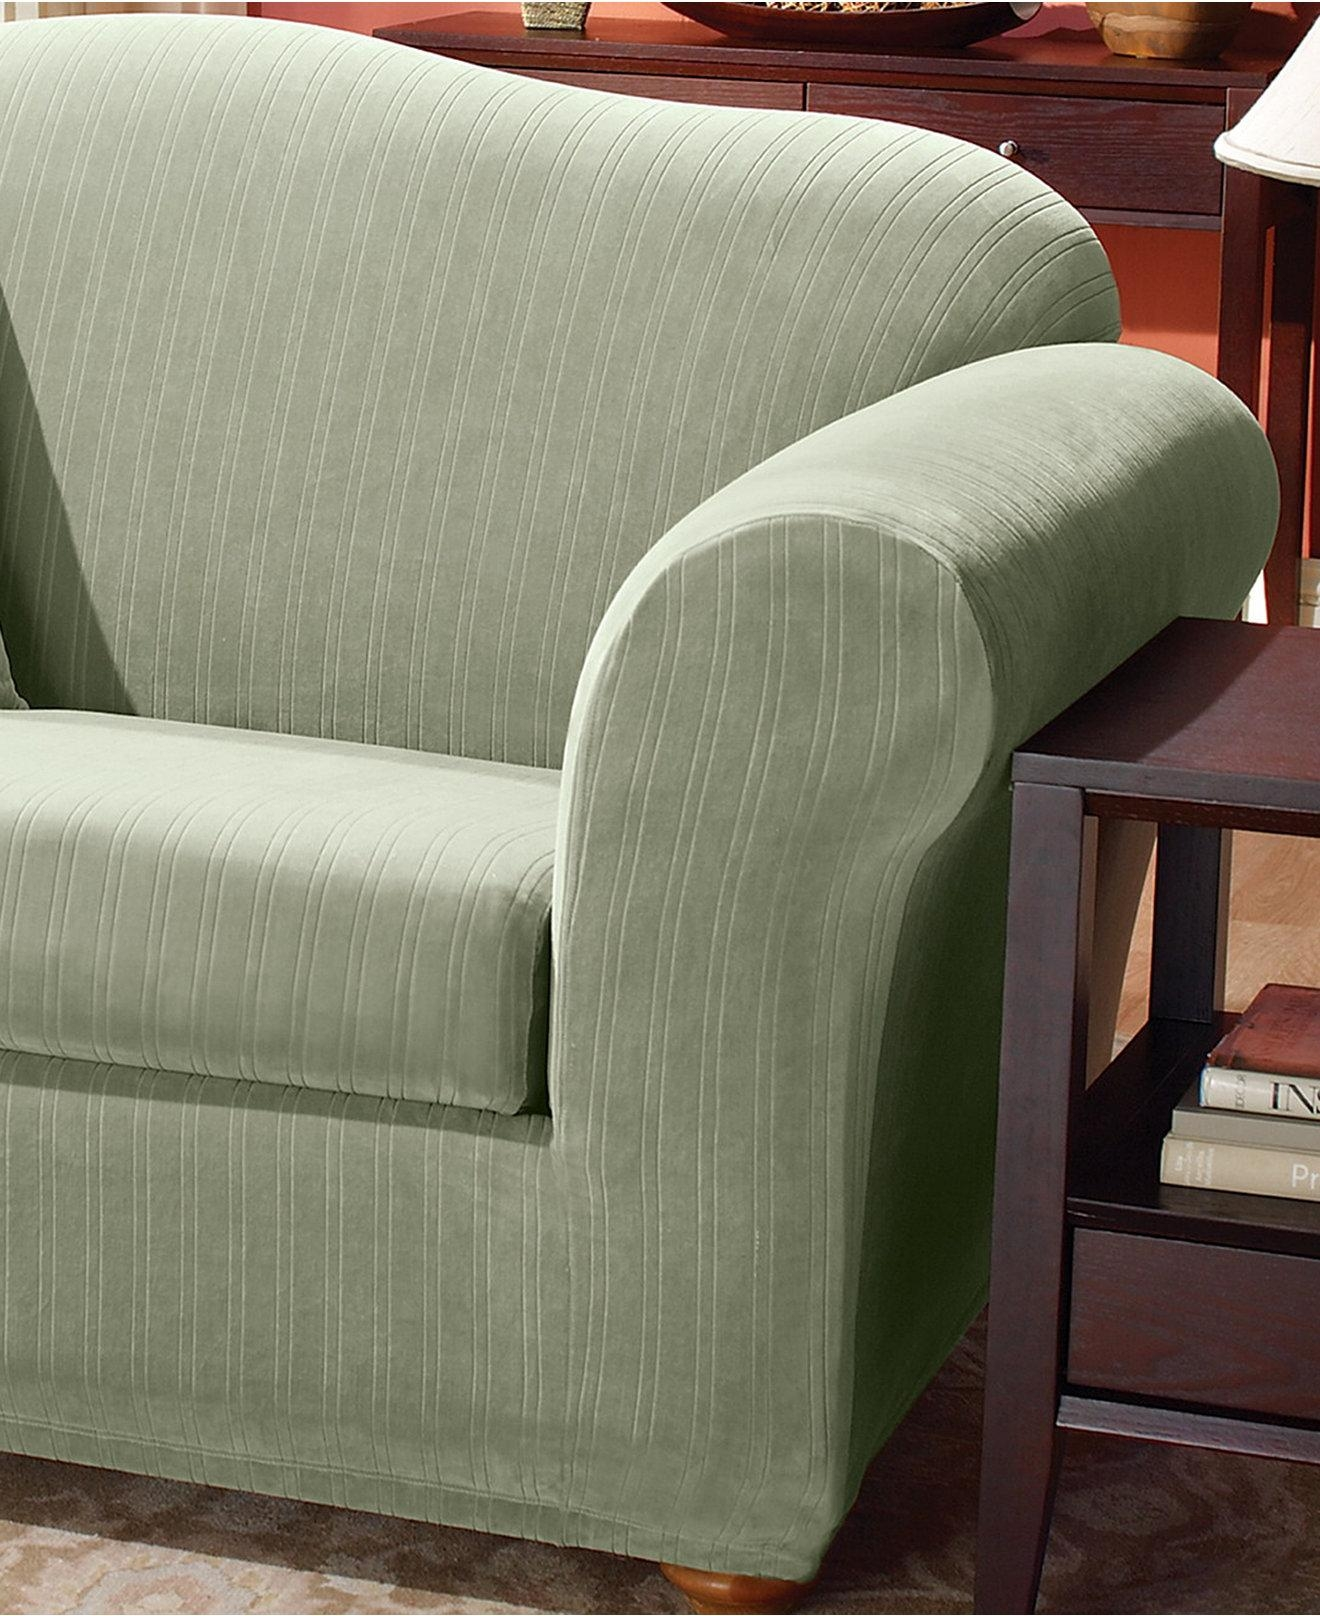 Sofas Center : Couch Covers Sofa And Chair Slipcovers Macys Sure Regarding Stretch Slipcovers For Sofas (Image 14 of 20)